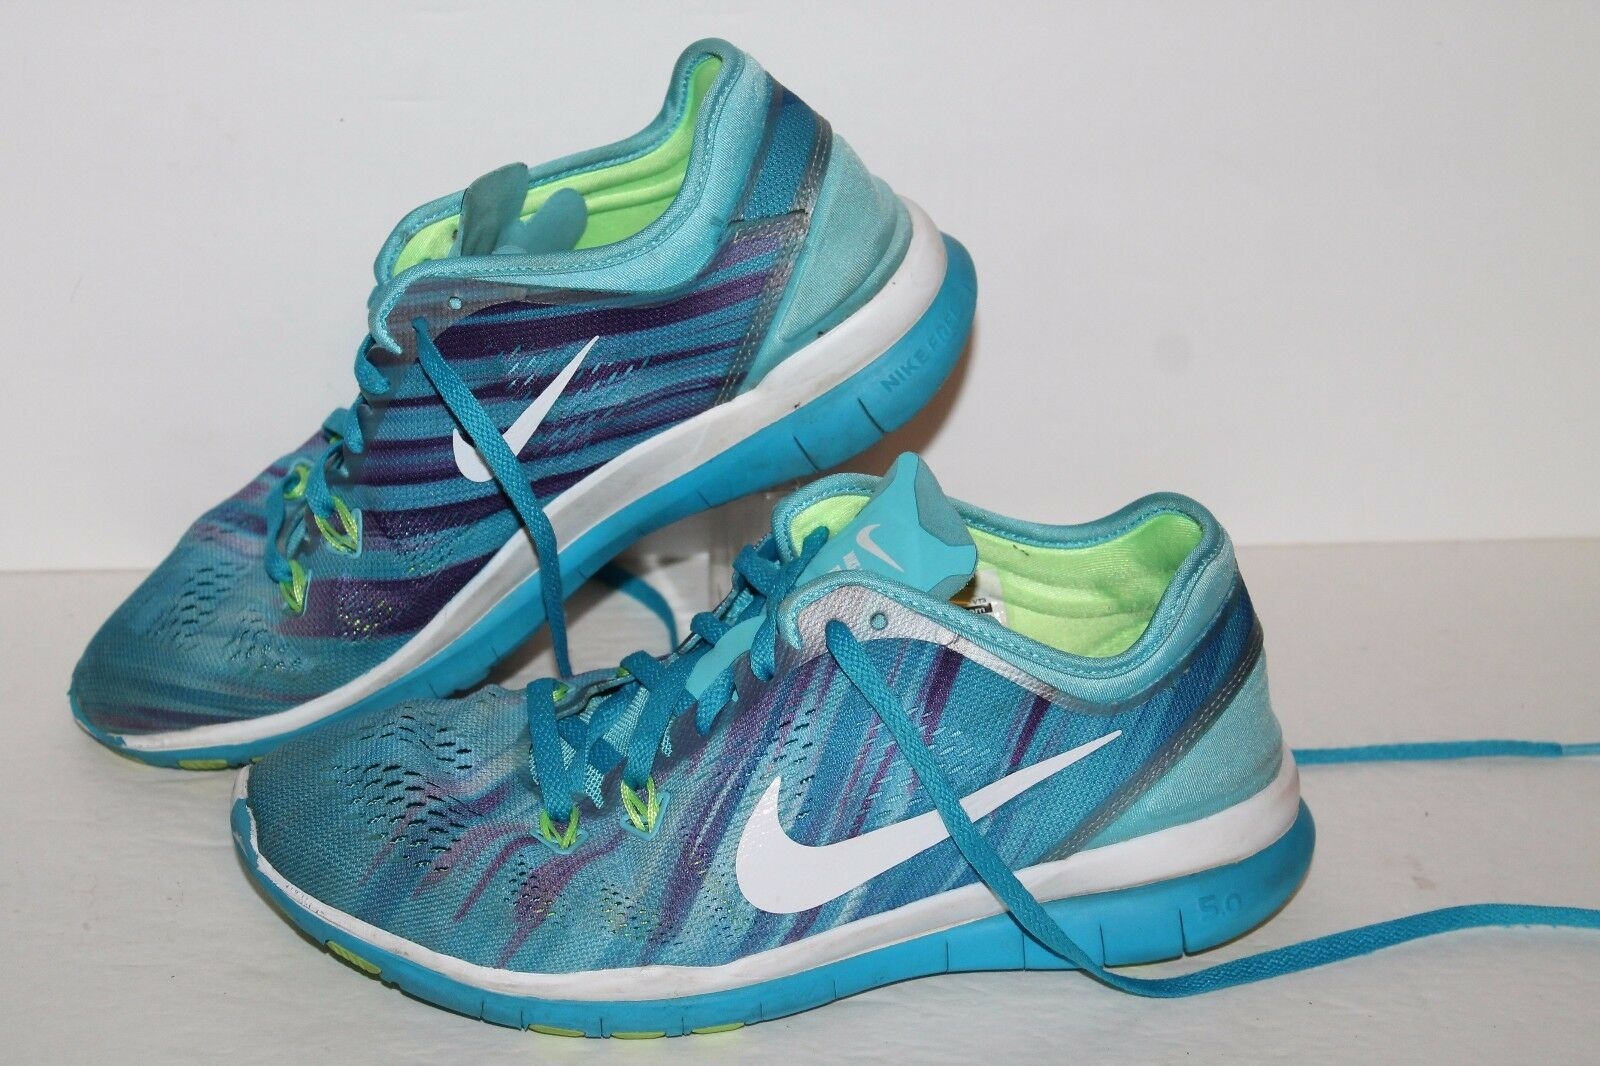 Nike Free 5 TR Fit Blue Print Running Shoes, Blues, Womens US 6.5 Cheap and beautiful fashion